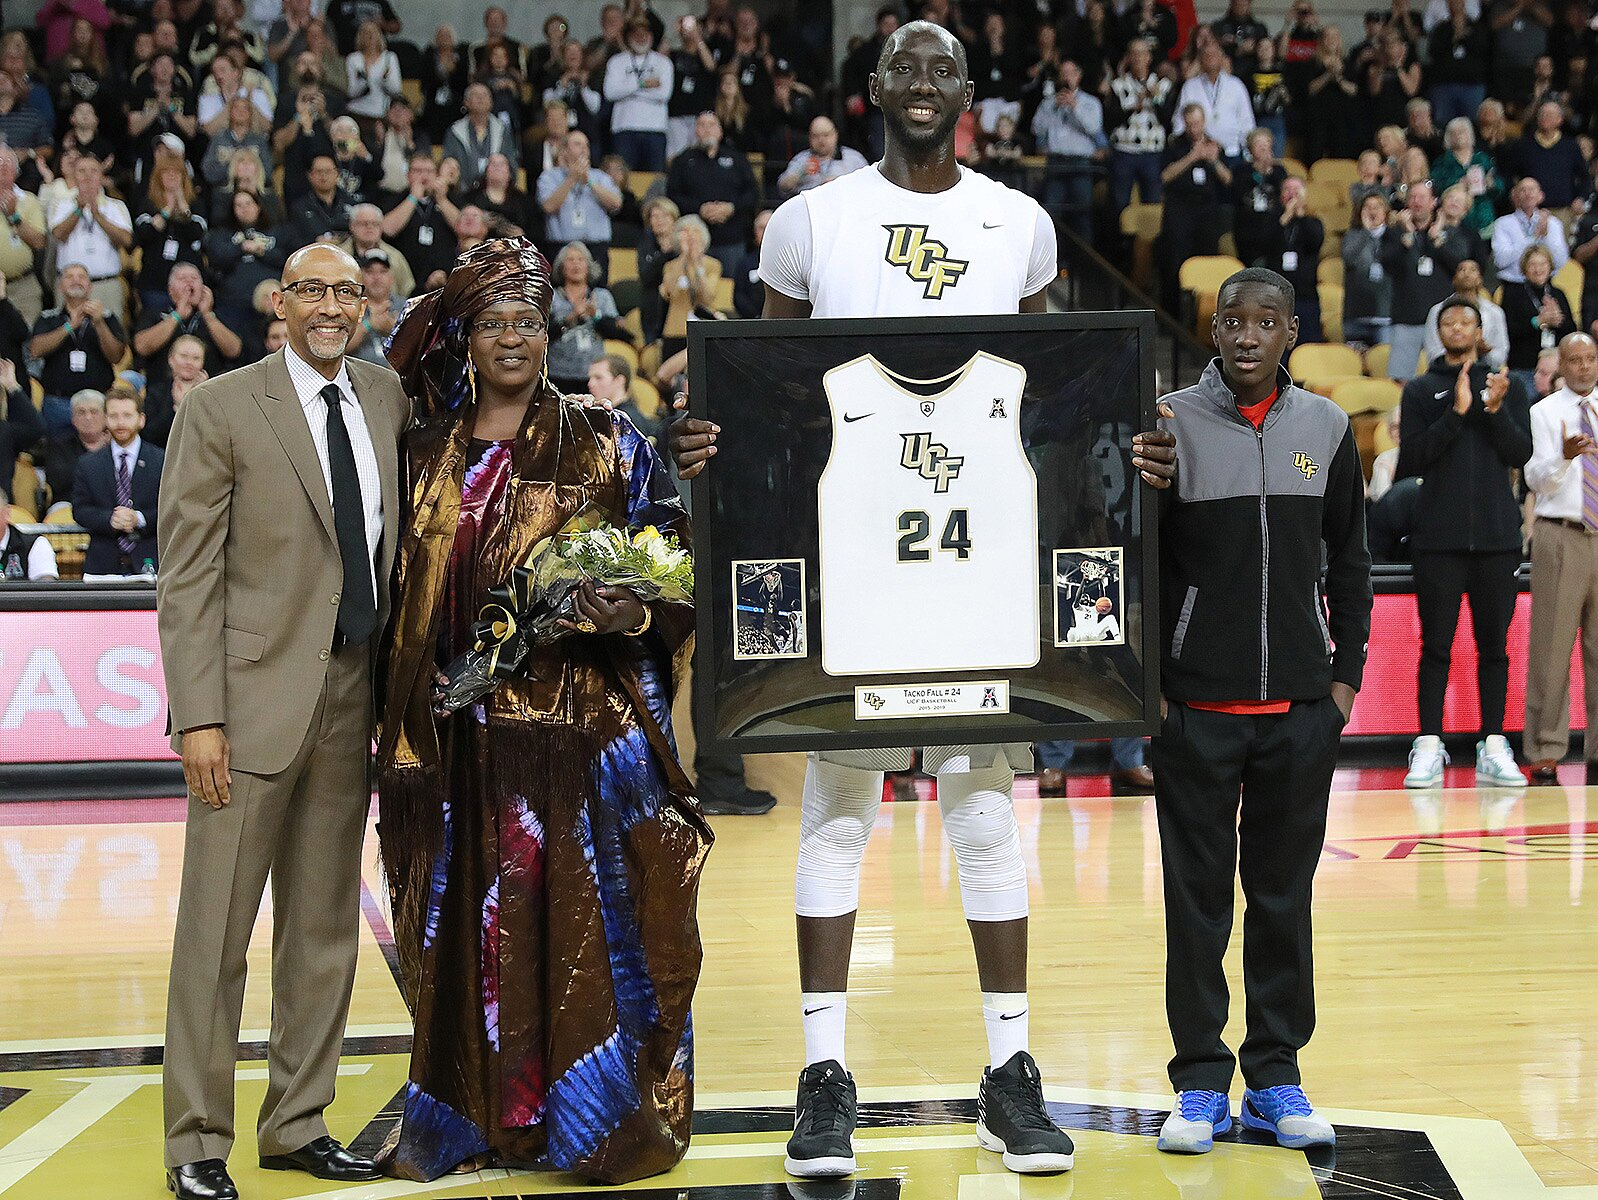 Tacko Fall, le basketteur de 23 ans qui fait le buzz au NBA